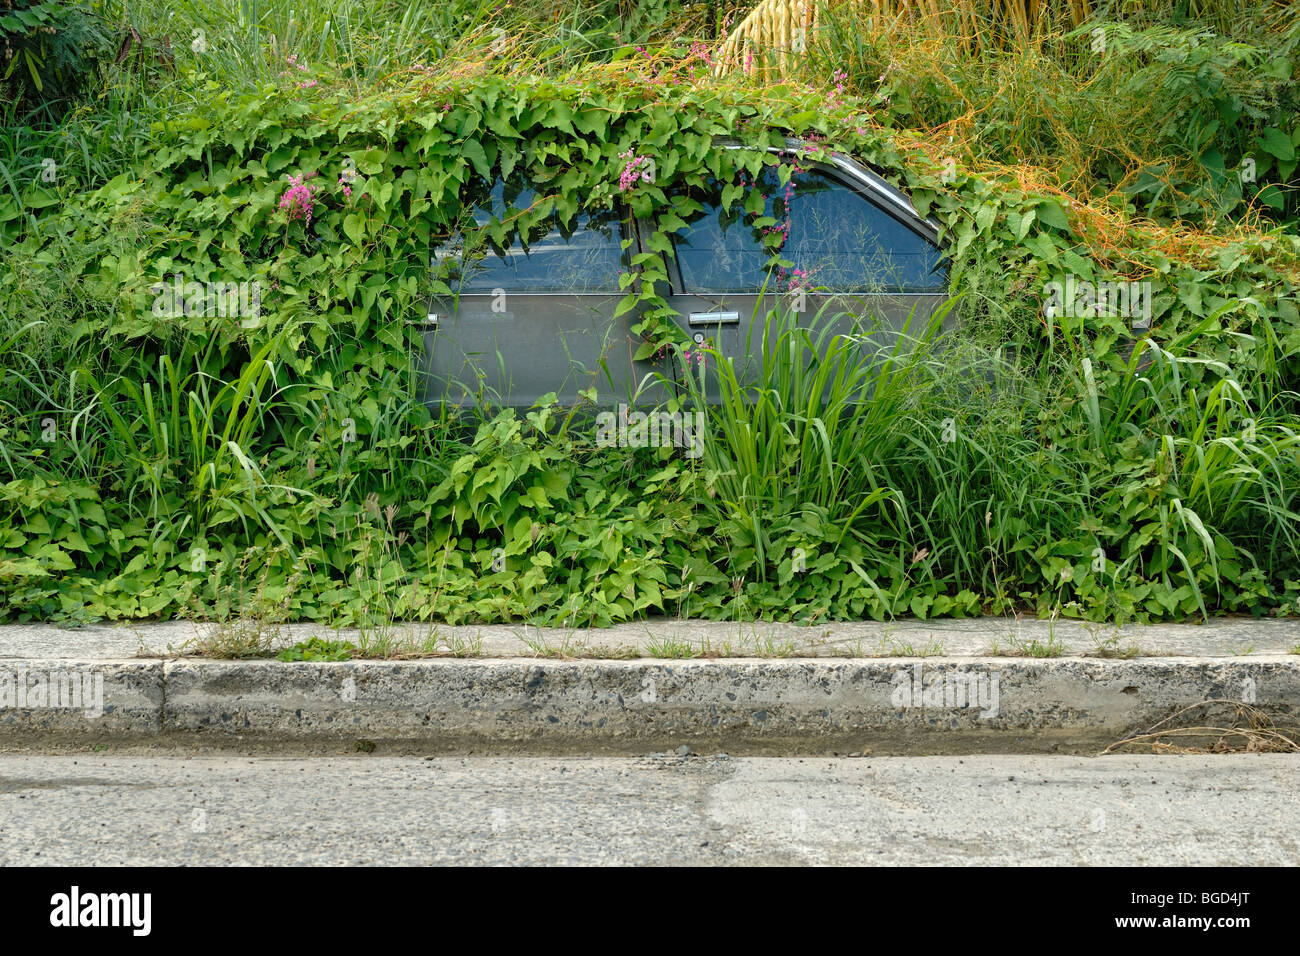 Car overgrown with vines and weeds, Christiansted, St. Croix island, U.S. Virgin Islands, United States - Stock Image